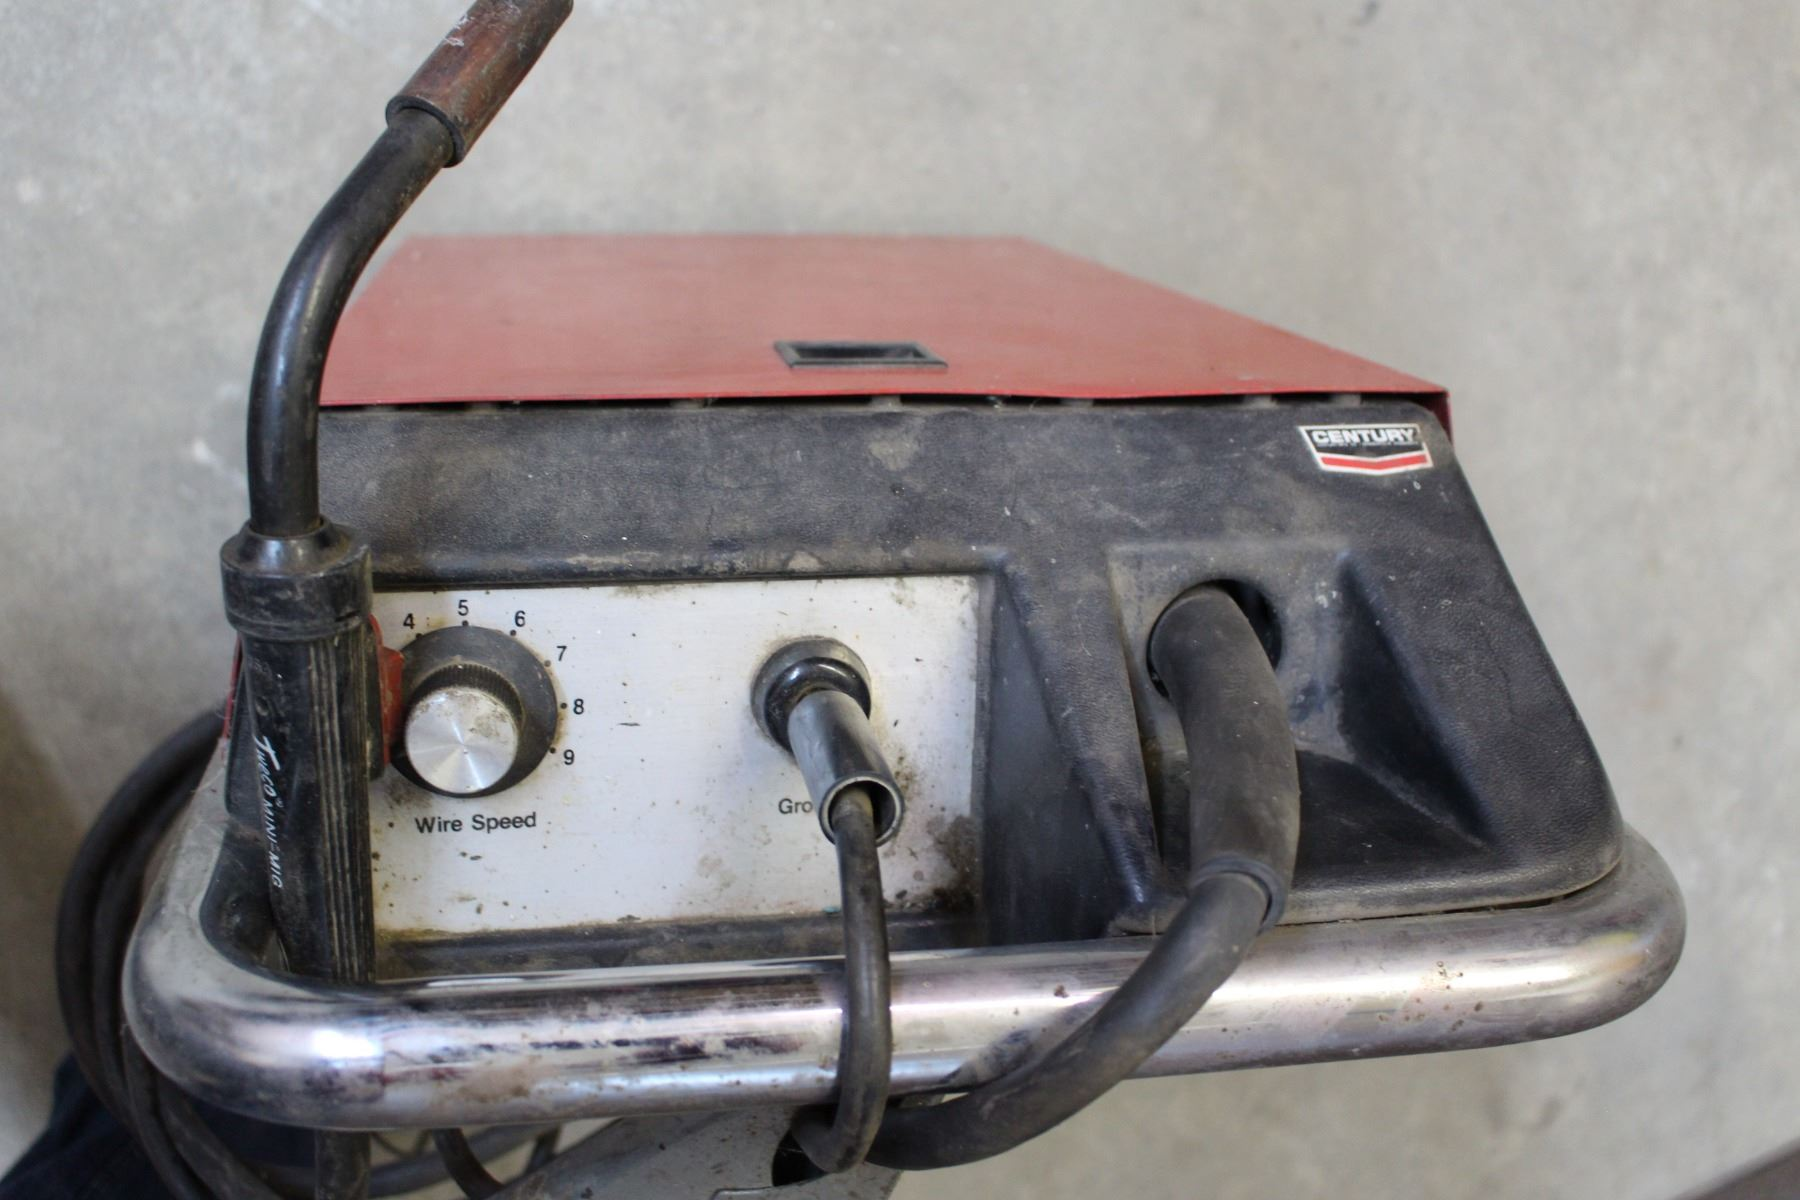 Century Portable Mig Wire Feed Welder With Manual And Lots Of Parts Related Keywords Suggestions Image 2 Accessories